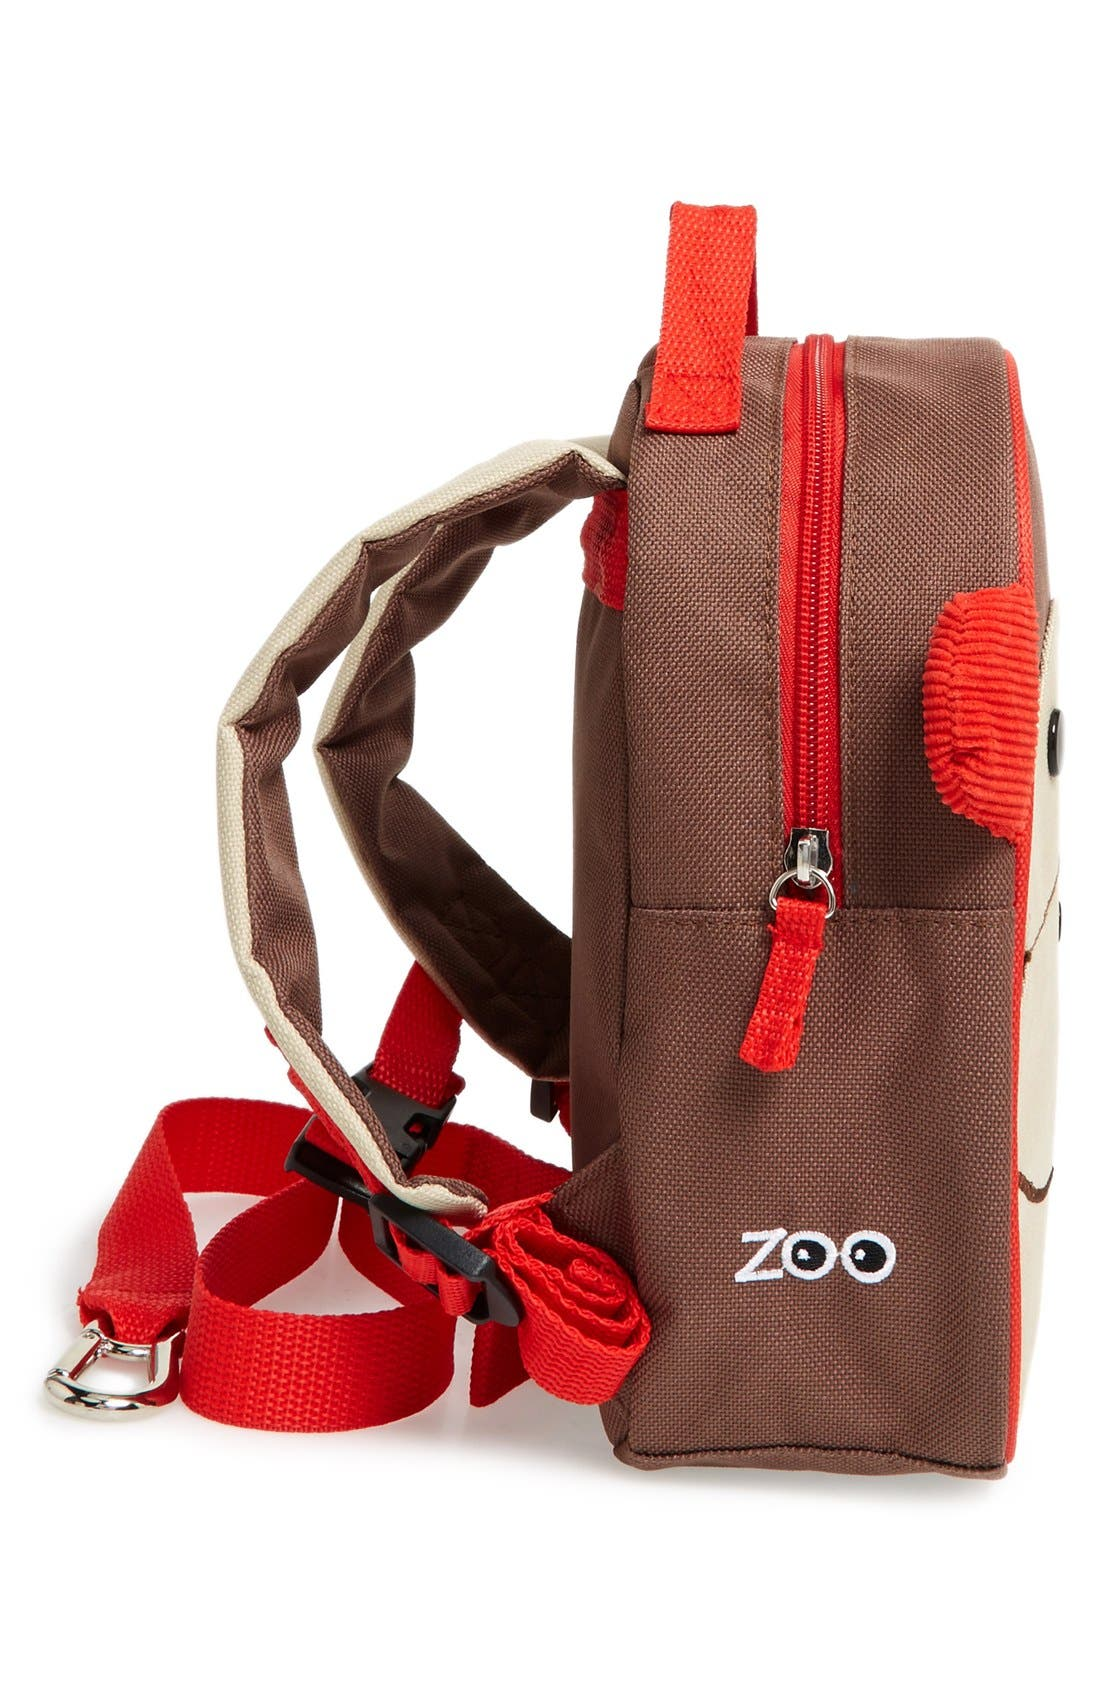 'Zoo' Safety Harness Backpack,                             Alternate thumbnail 3, color,                             MONKEY